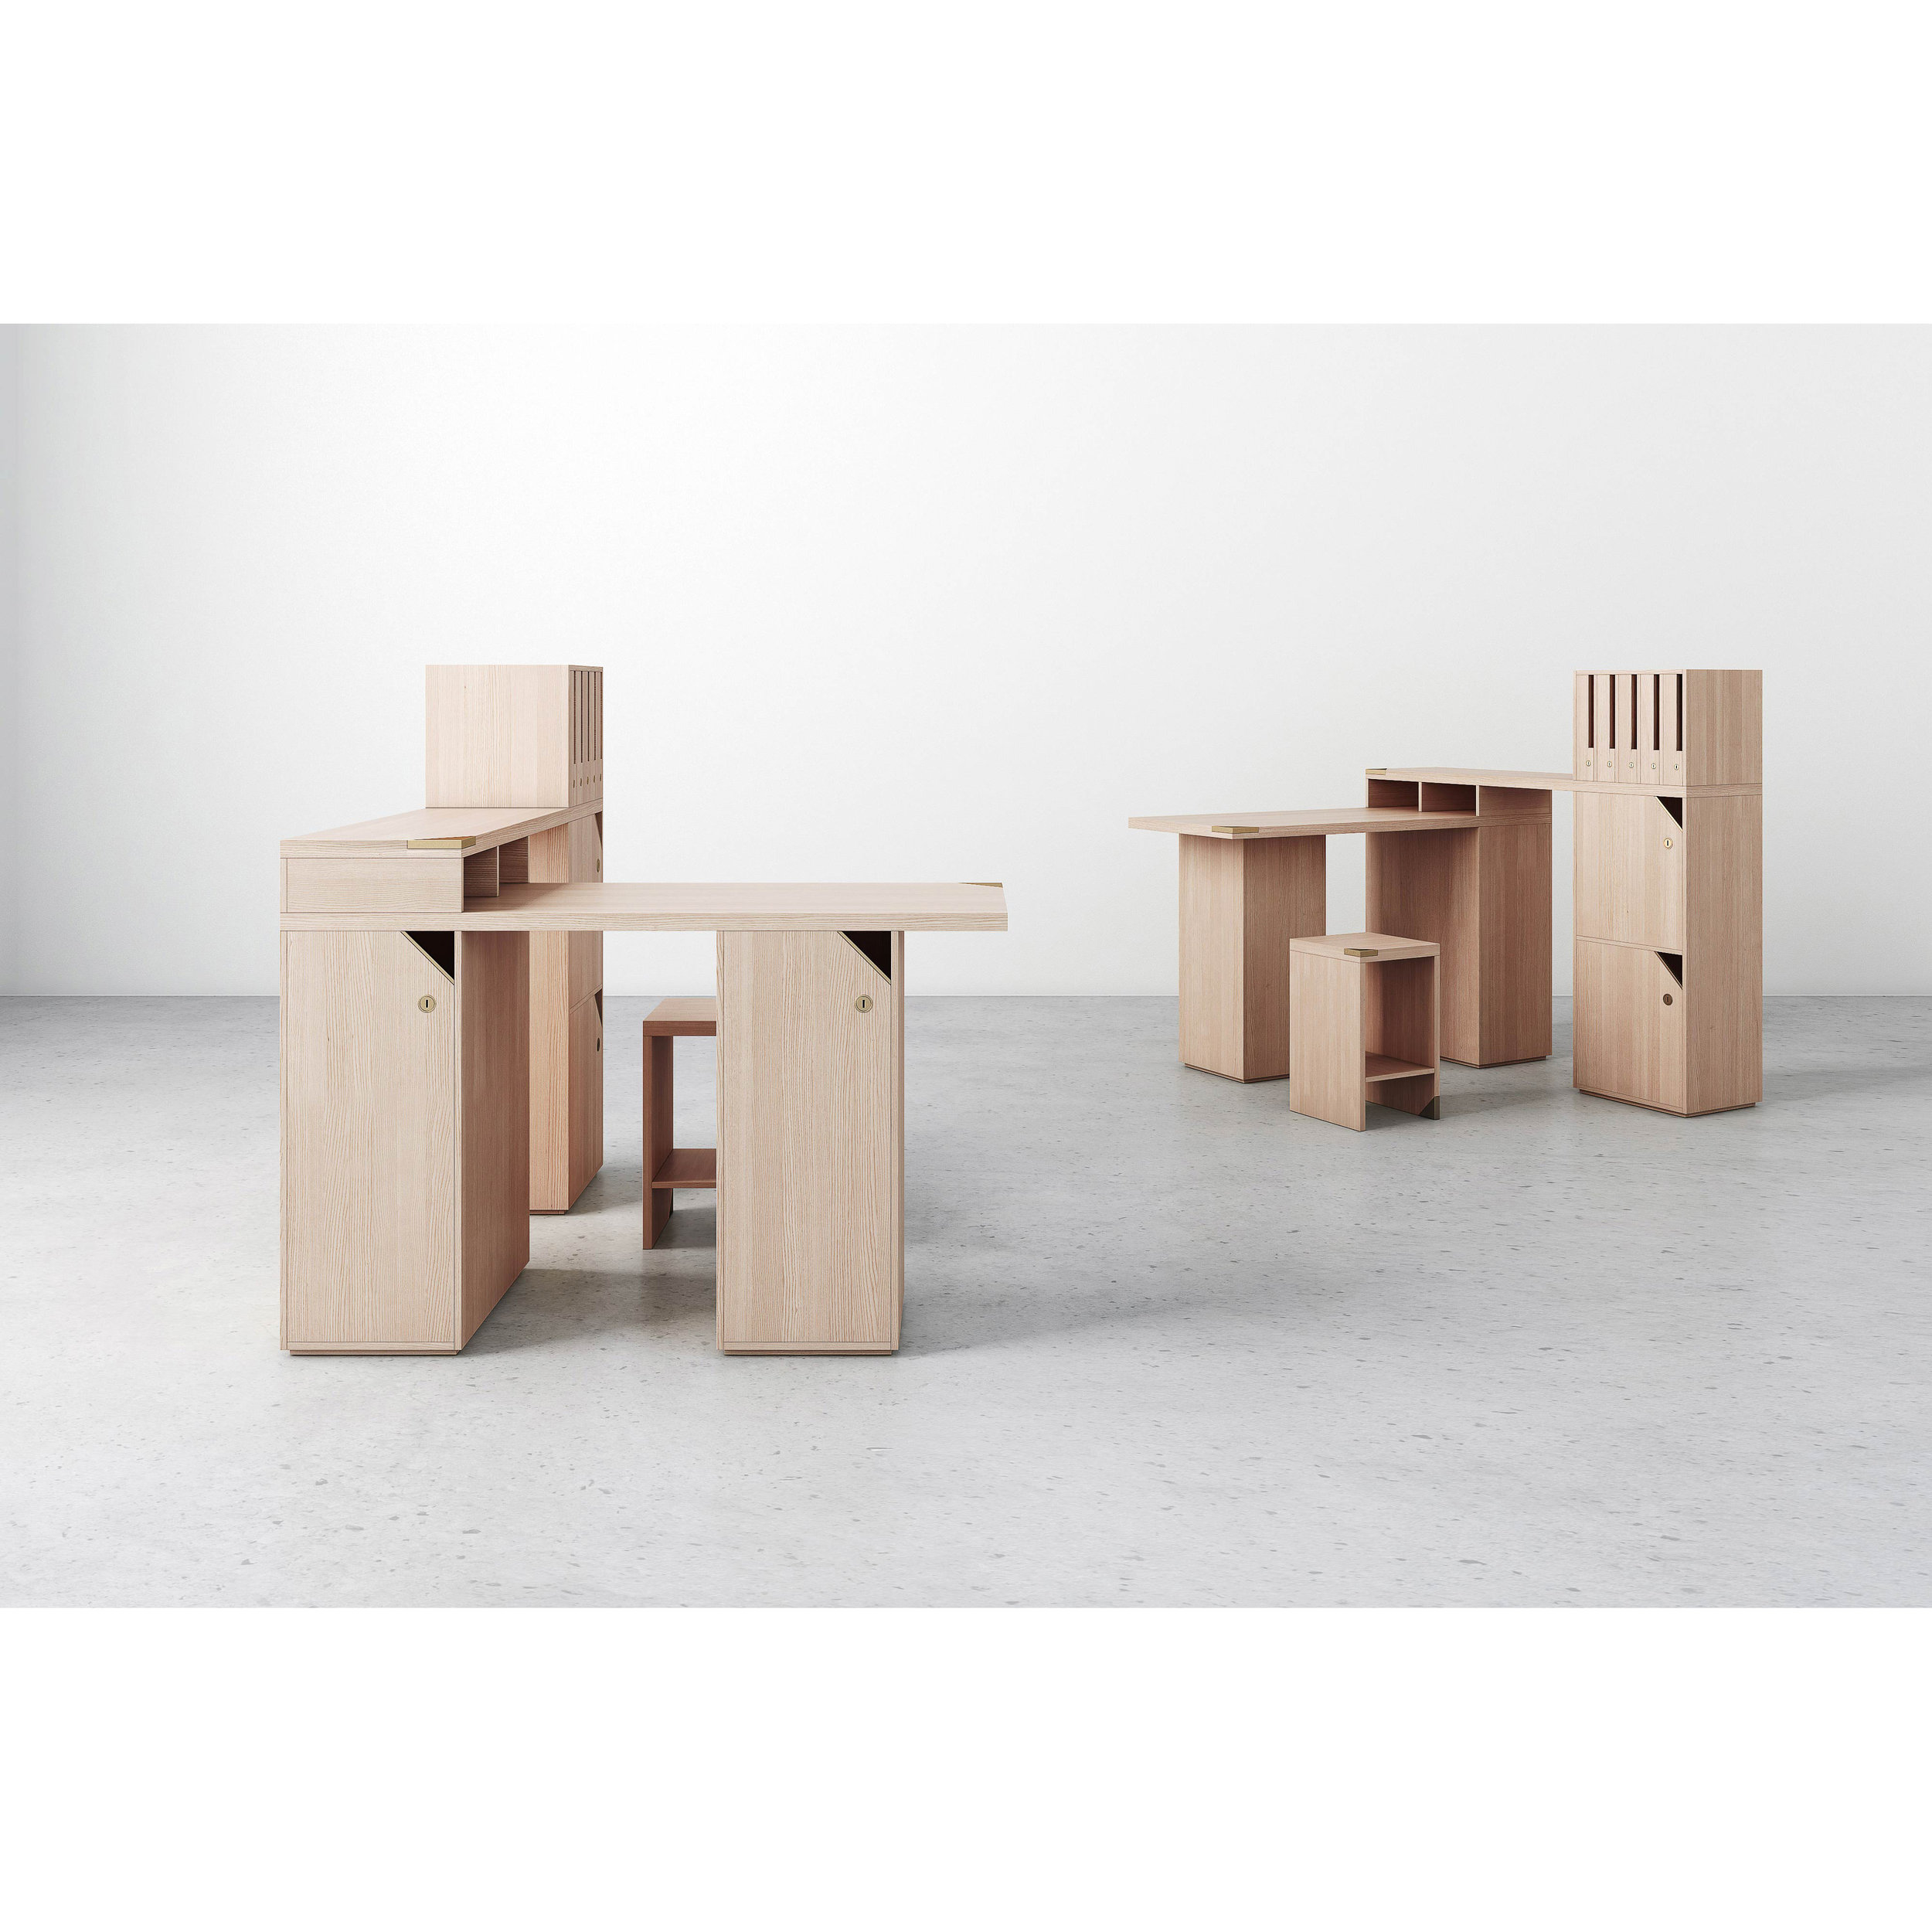 MOCT_office furniture_receptiondesk_set2 square.jpg